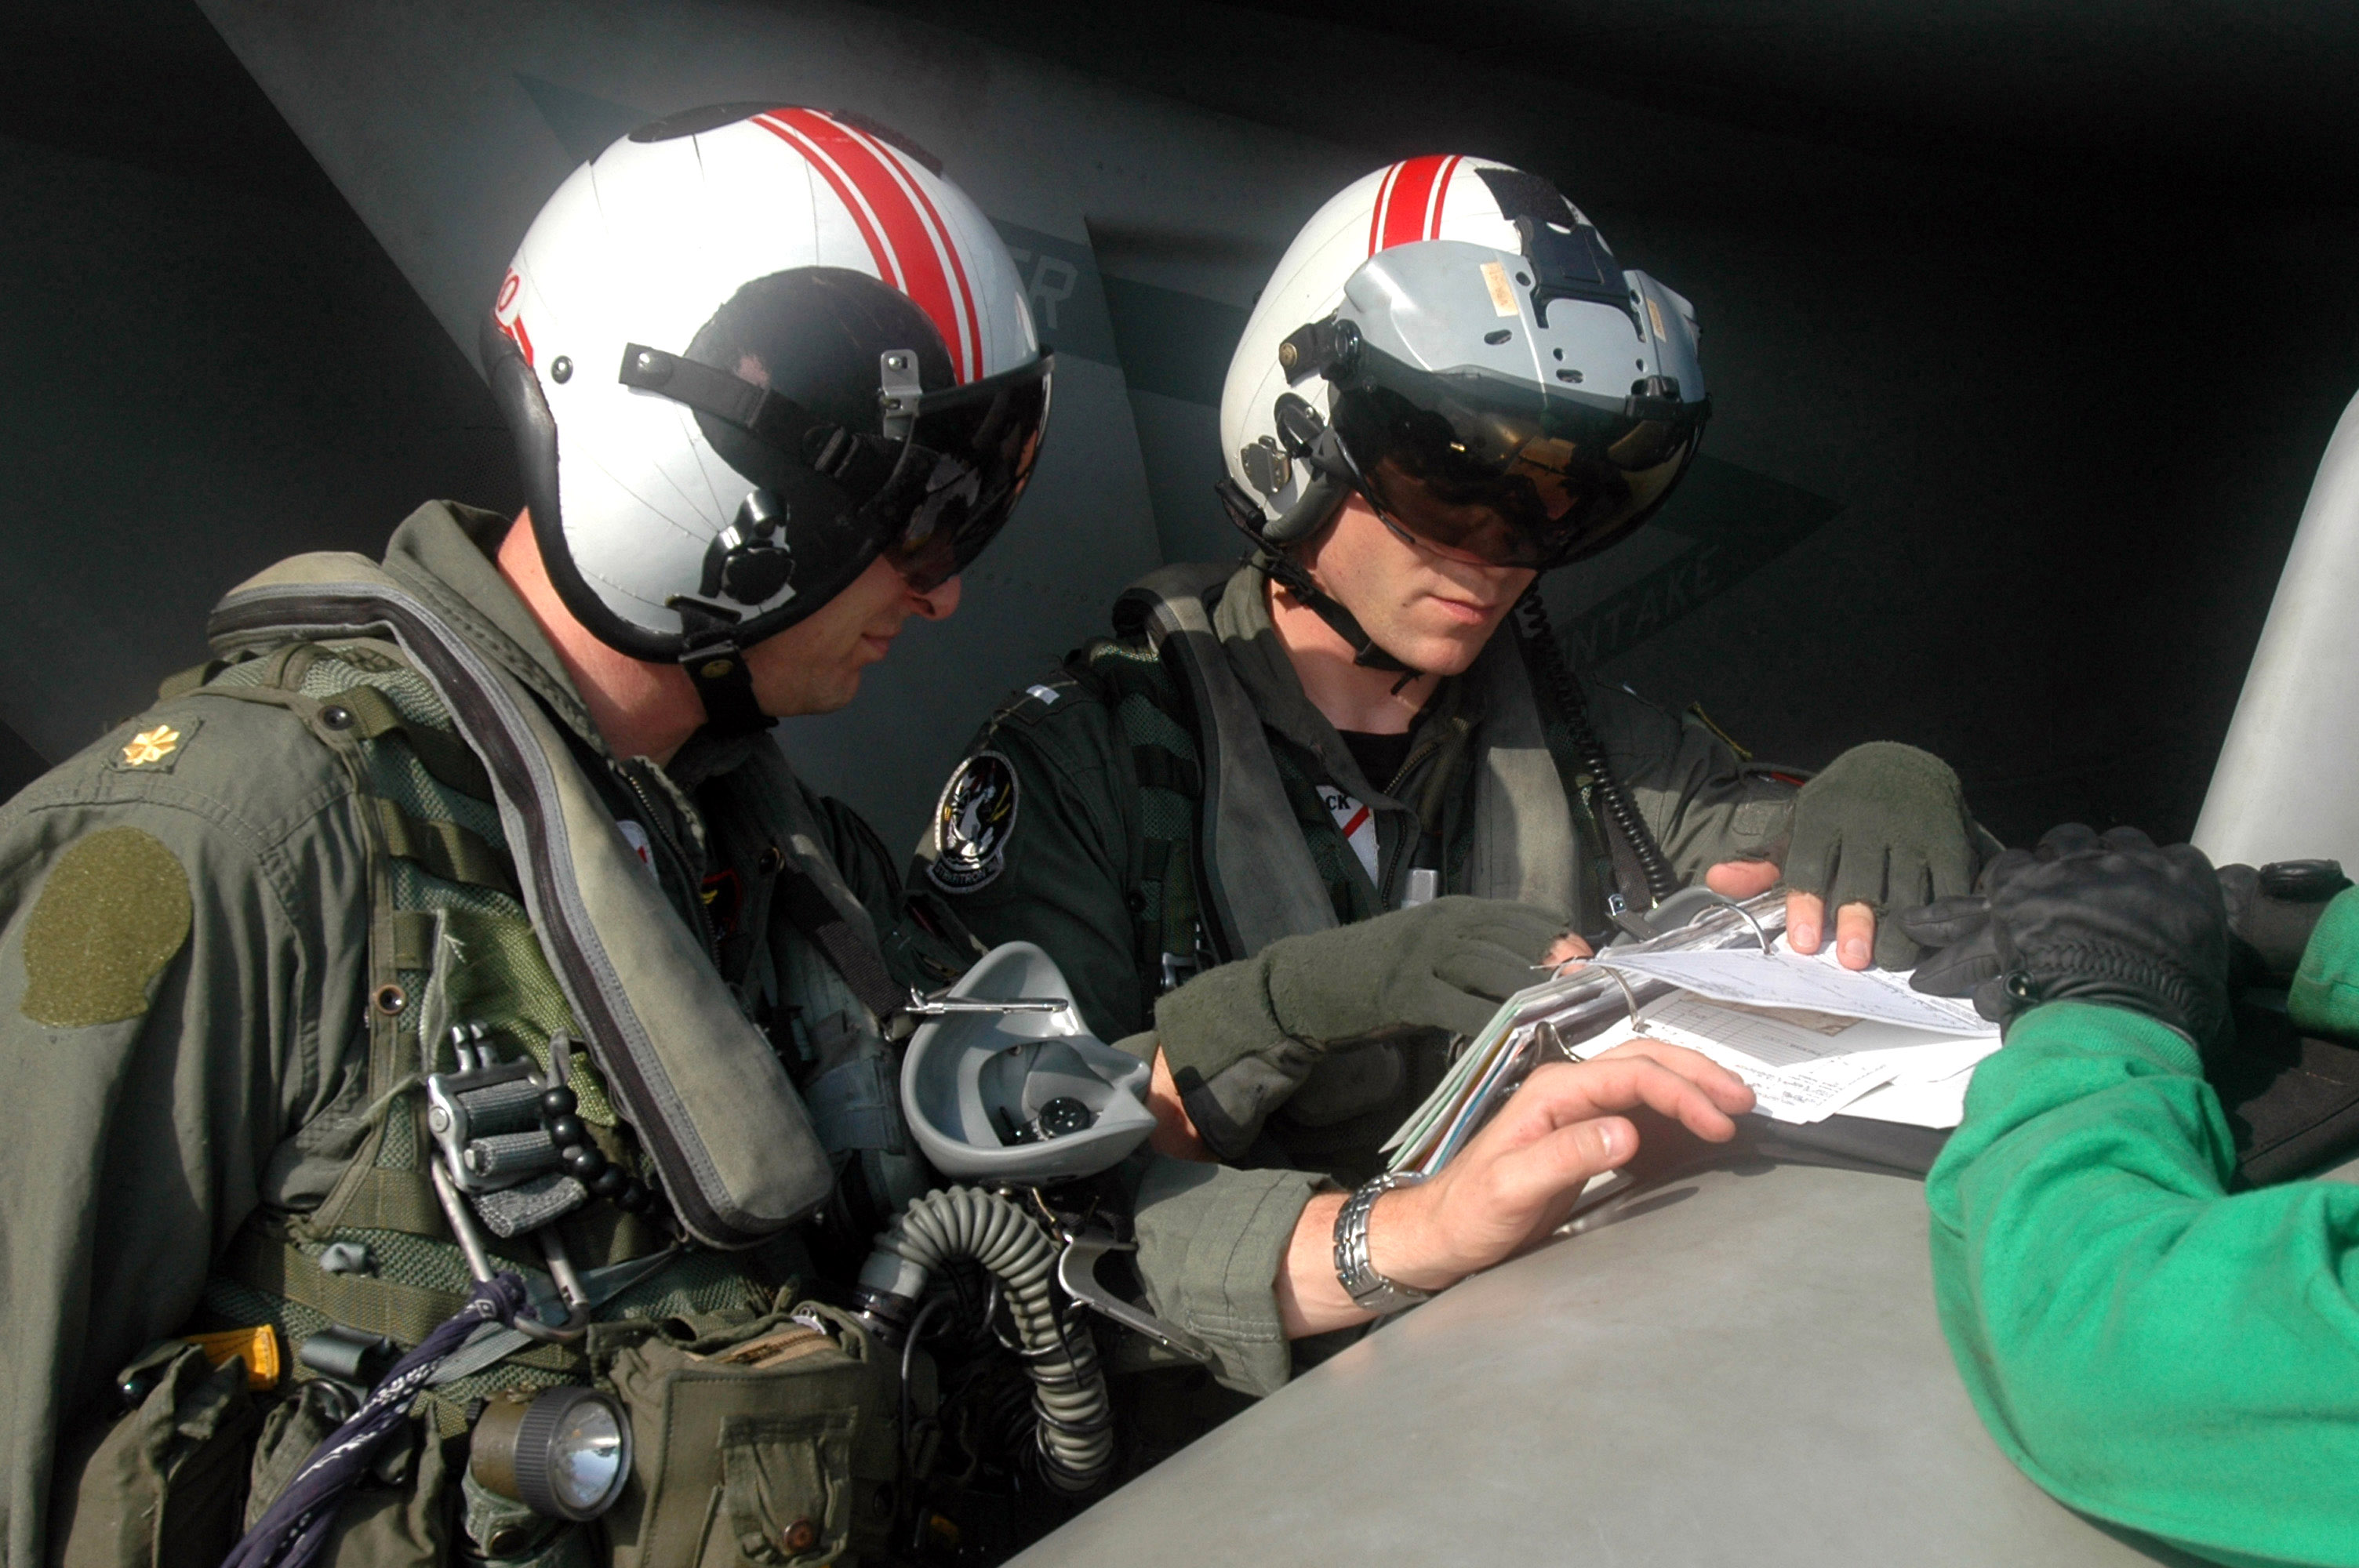 helicopter pilot helmet with File Us Navy 070525 N 0890s 021 Lt  Cmdr  John Depree And Lt  J G  David Dufault  Both Assigned To The Black Aces Of Strike Fighter Squadron  Vfa  41  Go Over Pre Flight Checks Prior To Launch Aboard Nuclear Powered Aircraft Carrier on F 35 Joint Strike Fighter Jsf Lightning as well Helmets7 furthermore 2010 10 01 archive additionally Index furthermore Stock Illustration Military Flight Fighter Pilot Helmet Vector Blue Air Force Oxygen Mask Illustration Isolated White Background Image62733667.